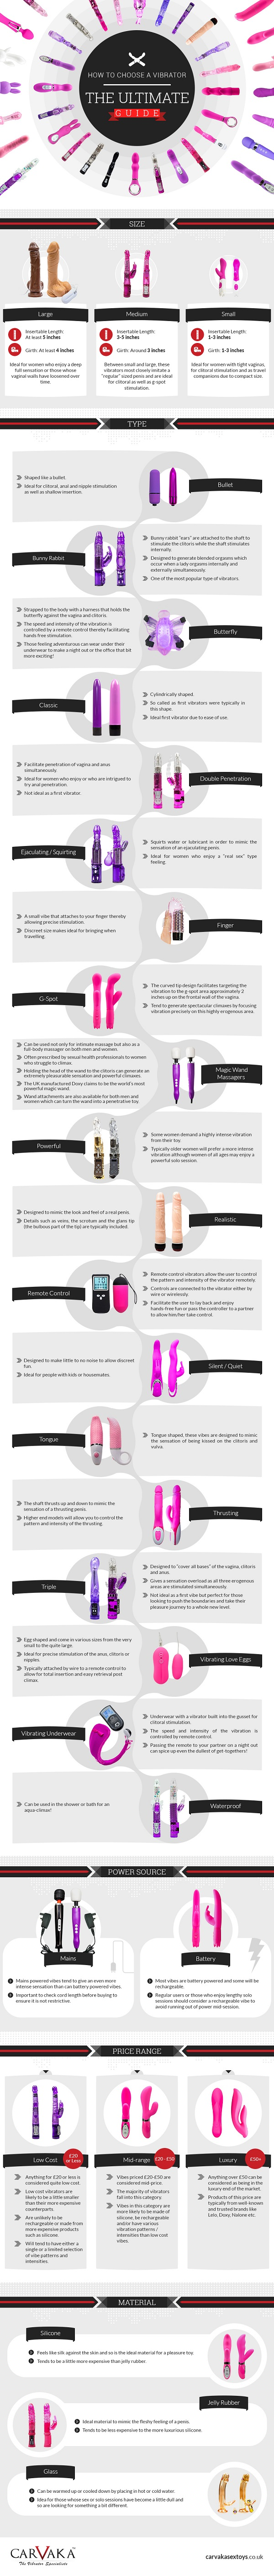 How to Choose a Vibrator Infographic by Carvaka